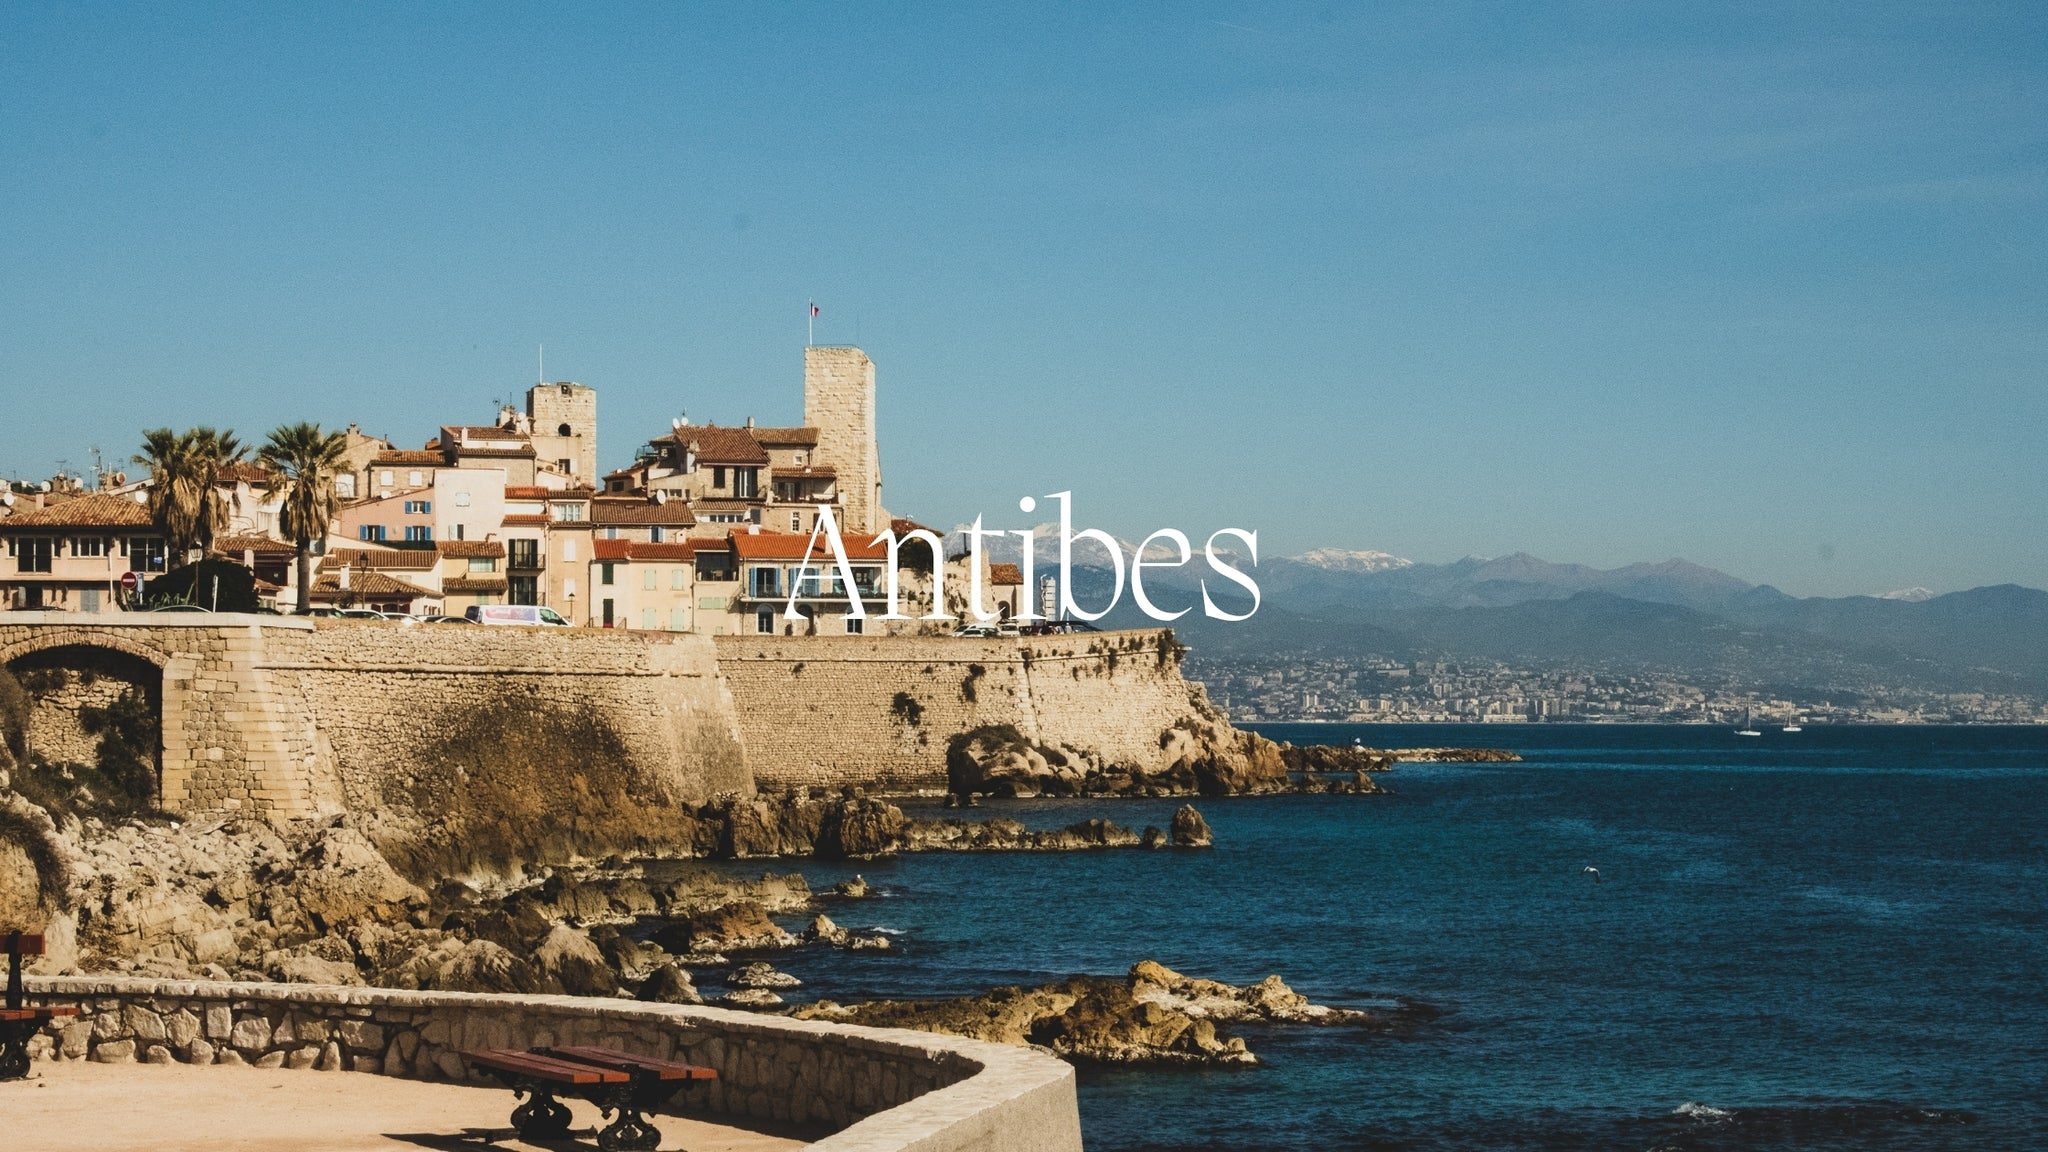 Image of the sea side of Antibes with the name Antibe written on it